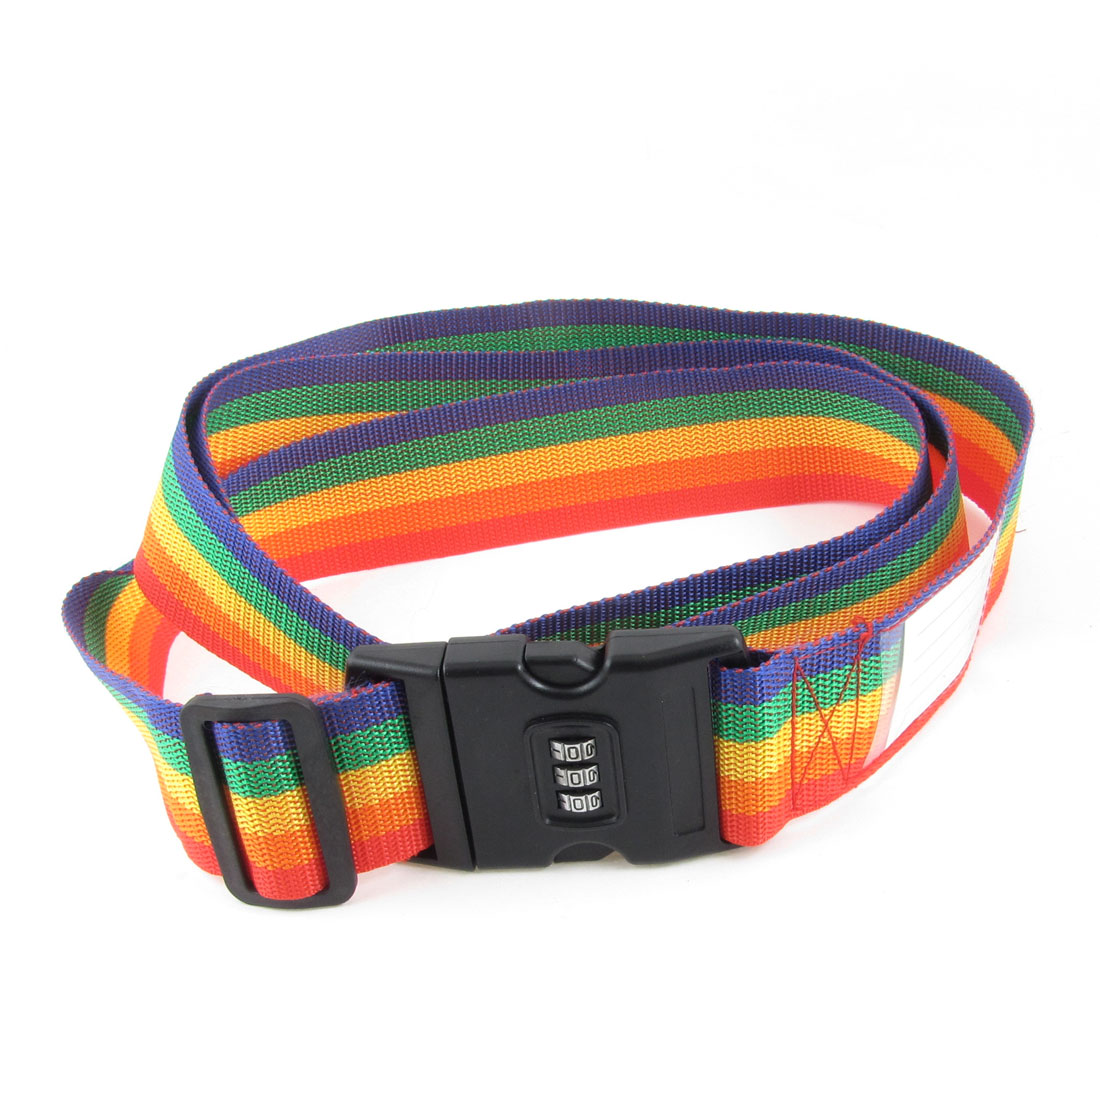 Combination Locking Red Green Striped Nylon Luggage Strap Belt 204cm Length